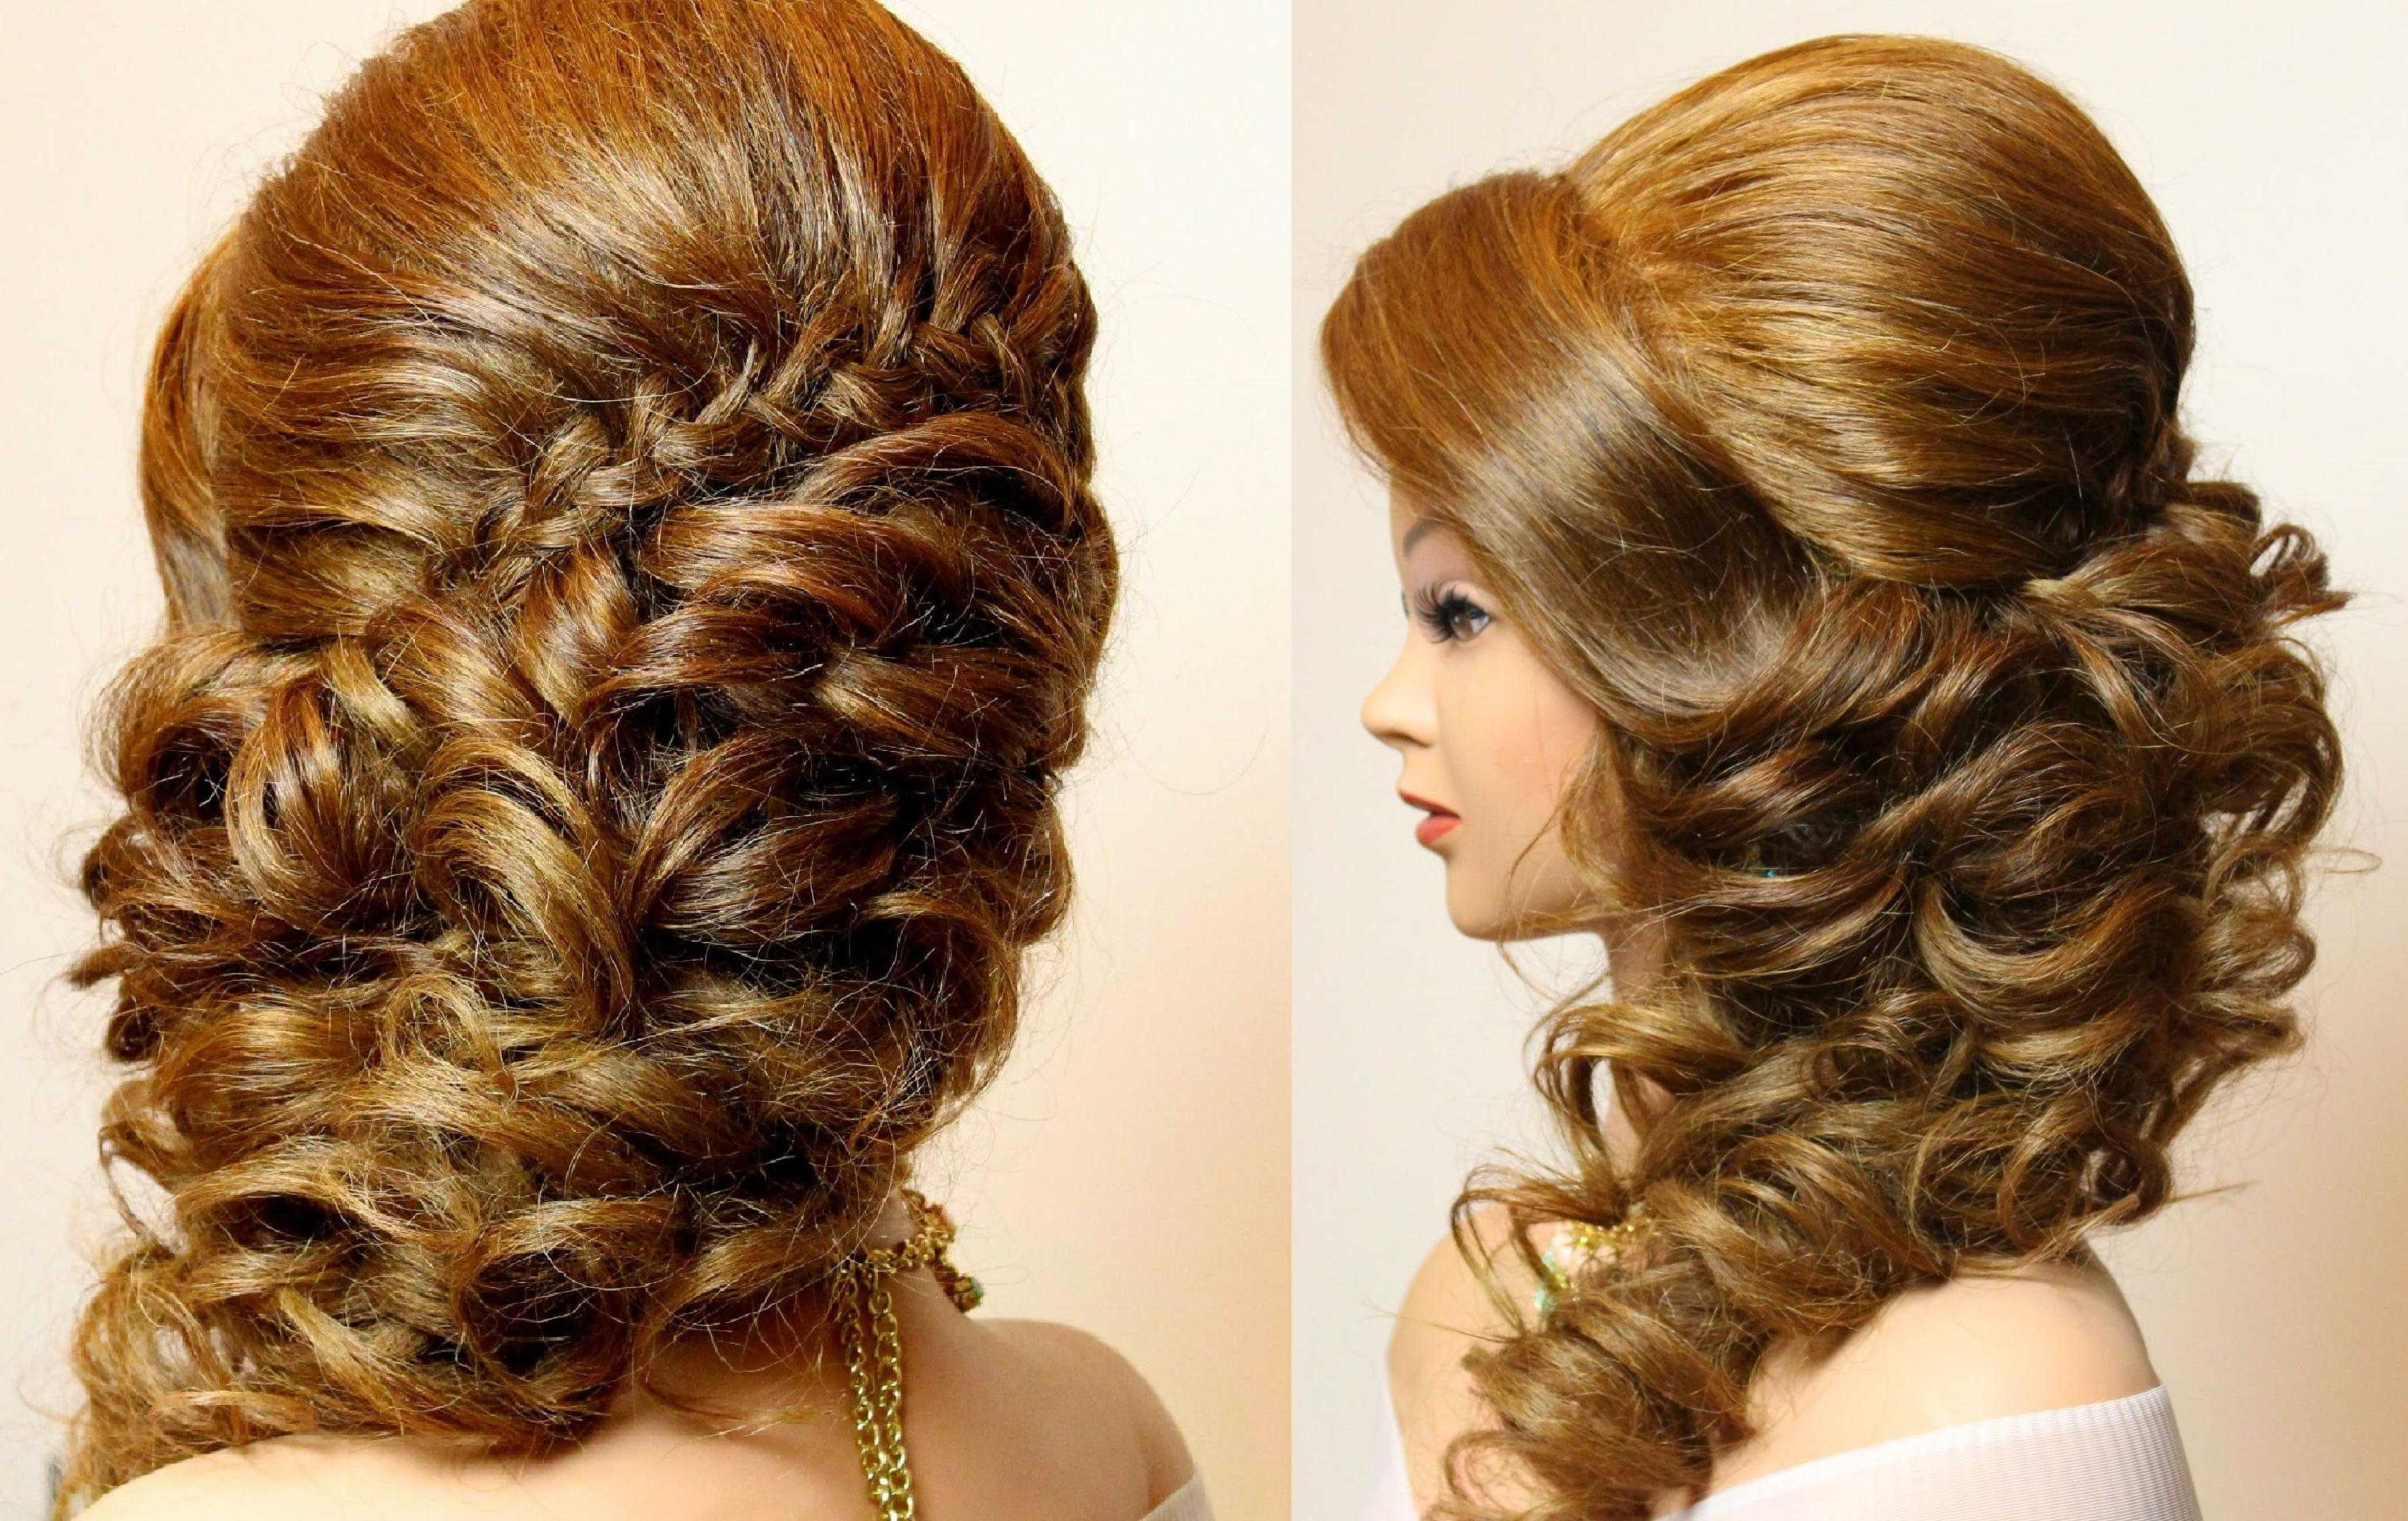 Well Liked Wedding Hairstyles For Long Hair With Braids Throughout Bridal Hairstyle With Braid And Curls (View 4 of 15)